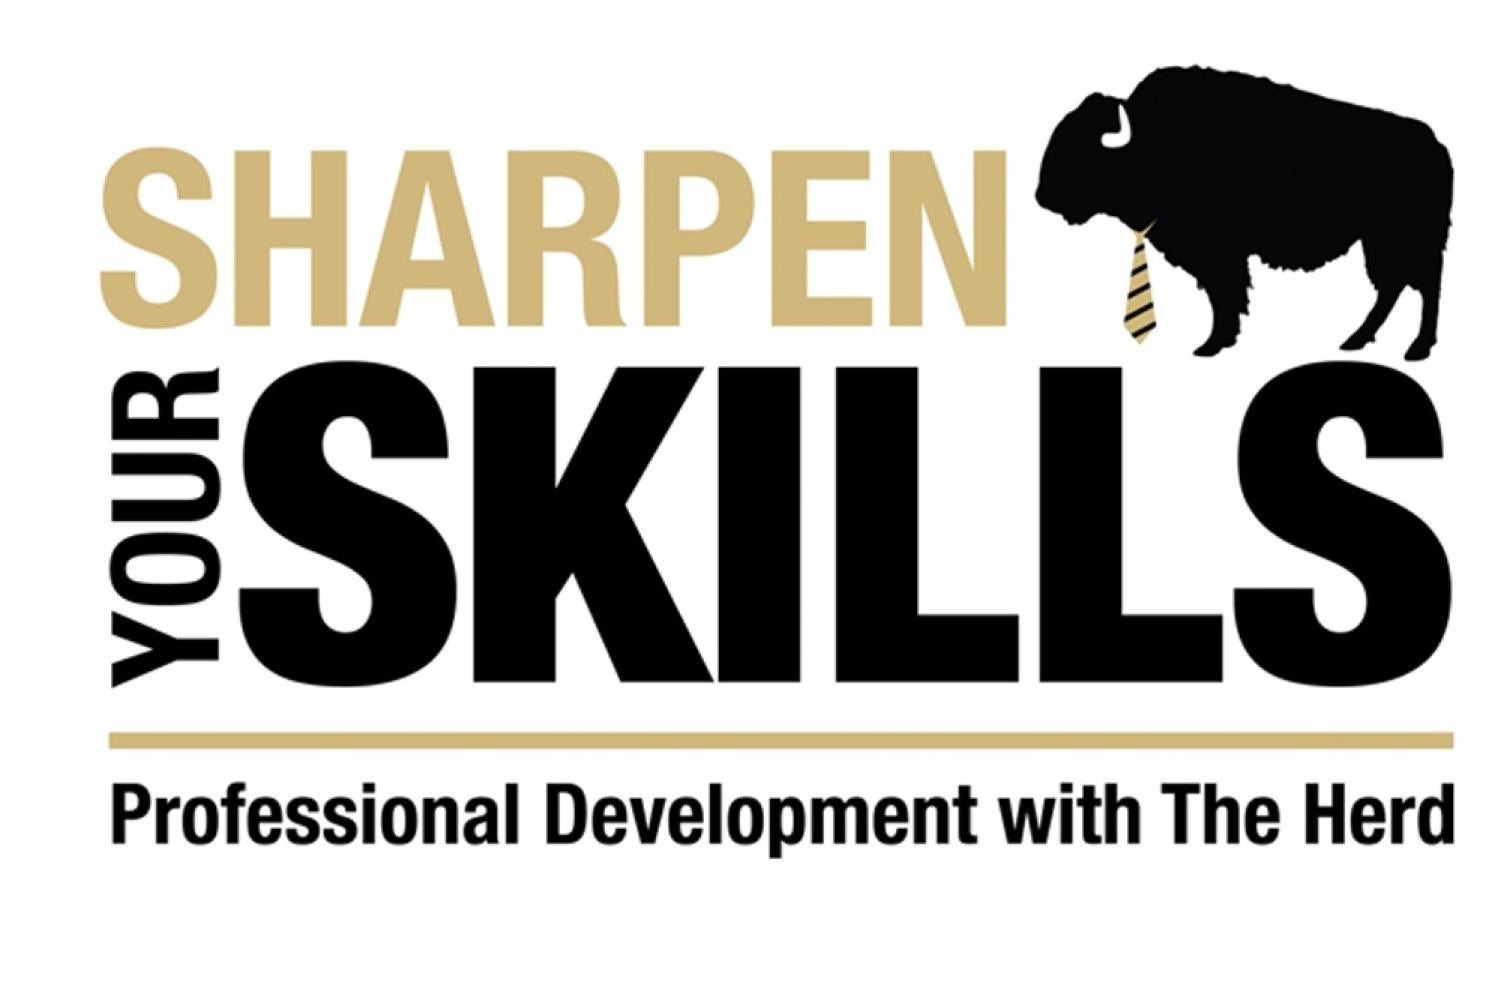 sharpen your skills